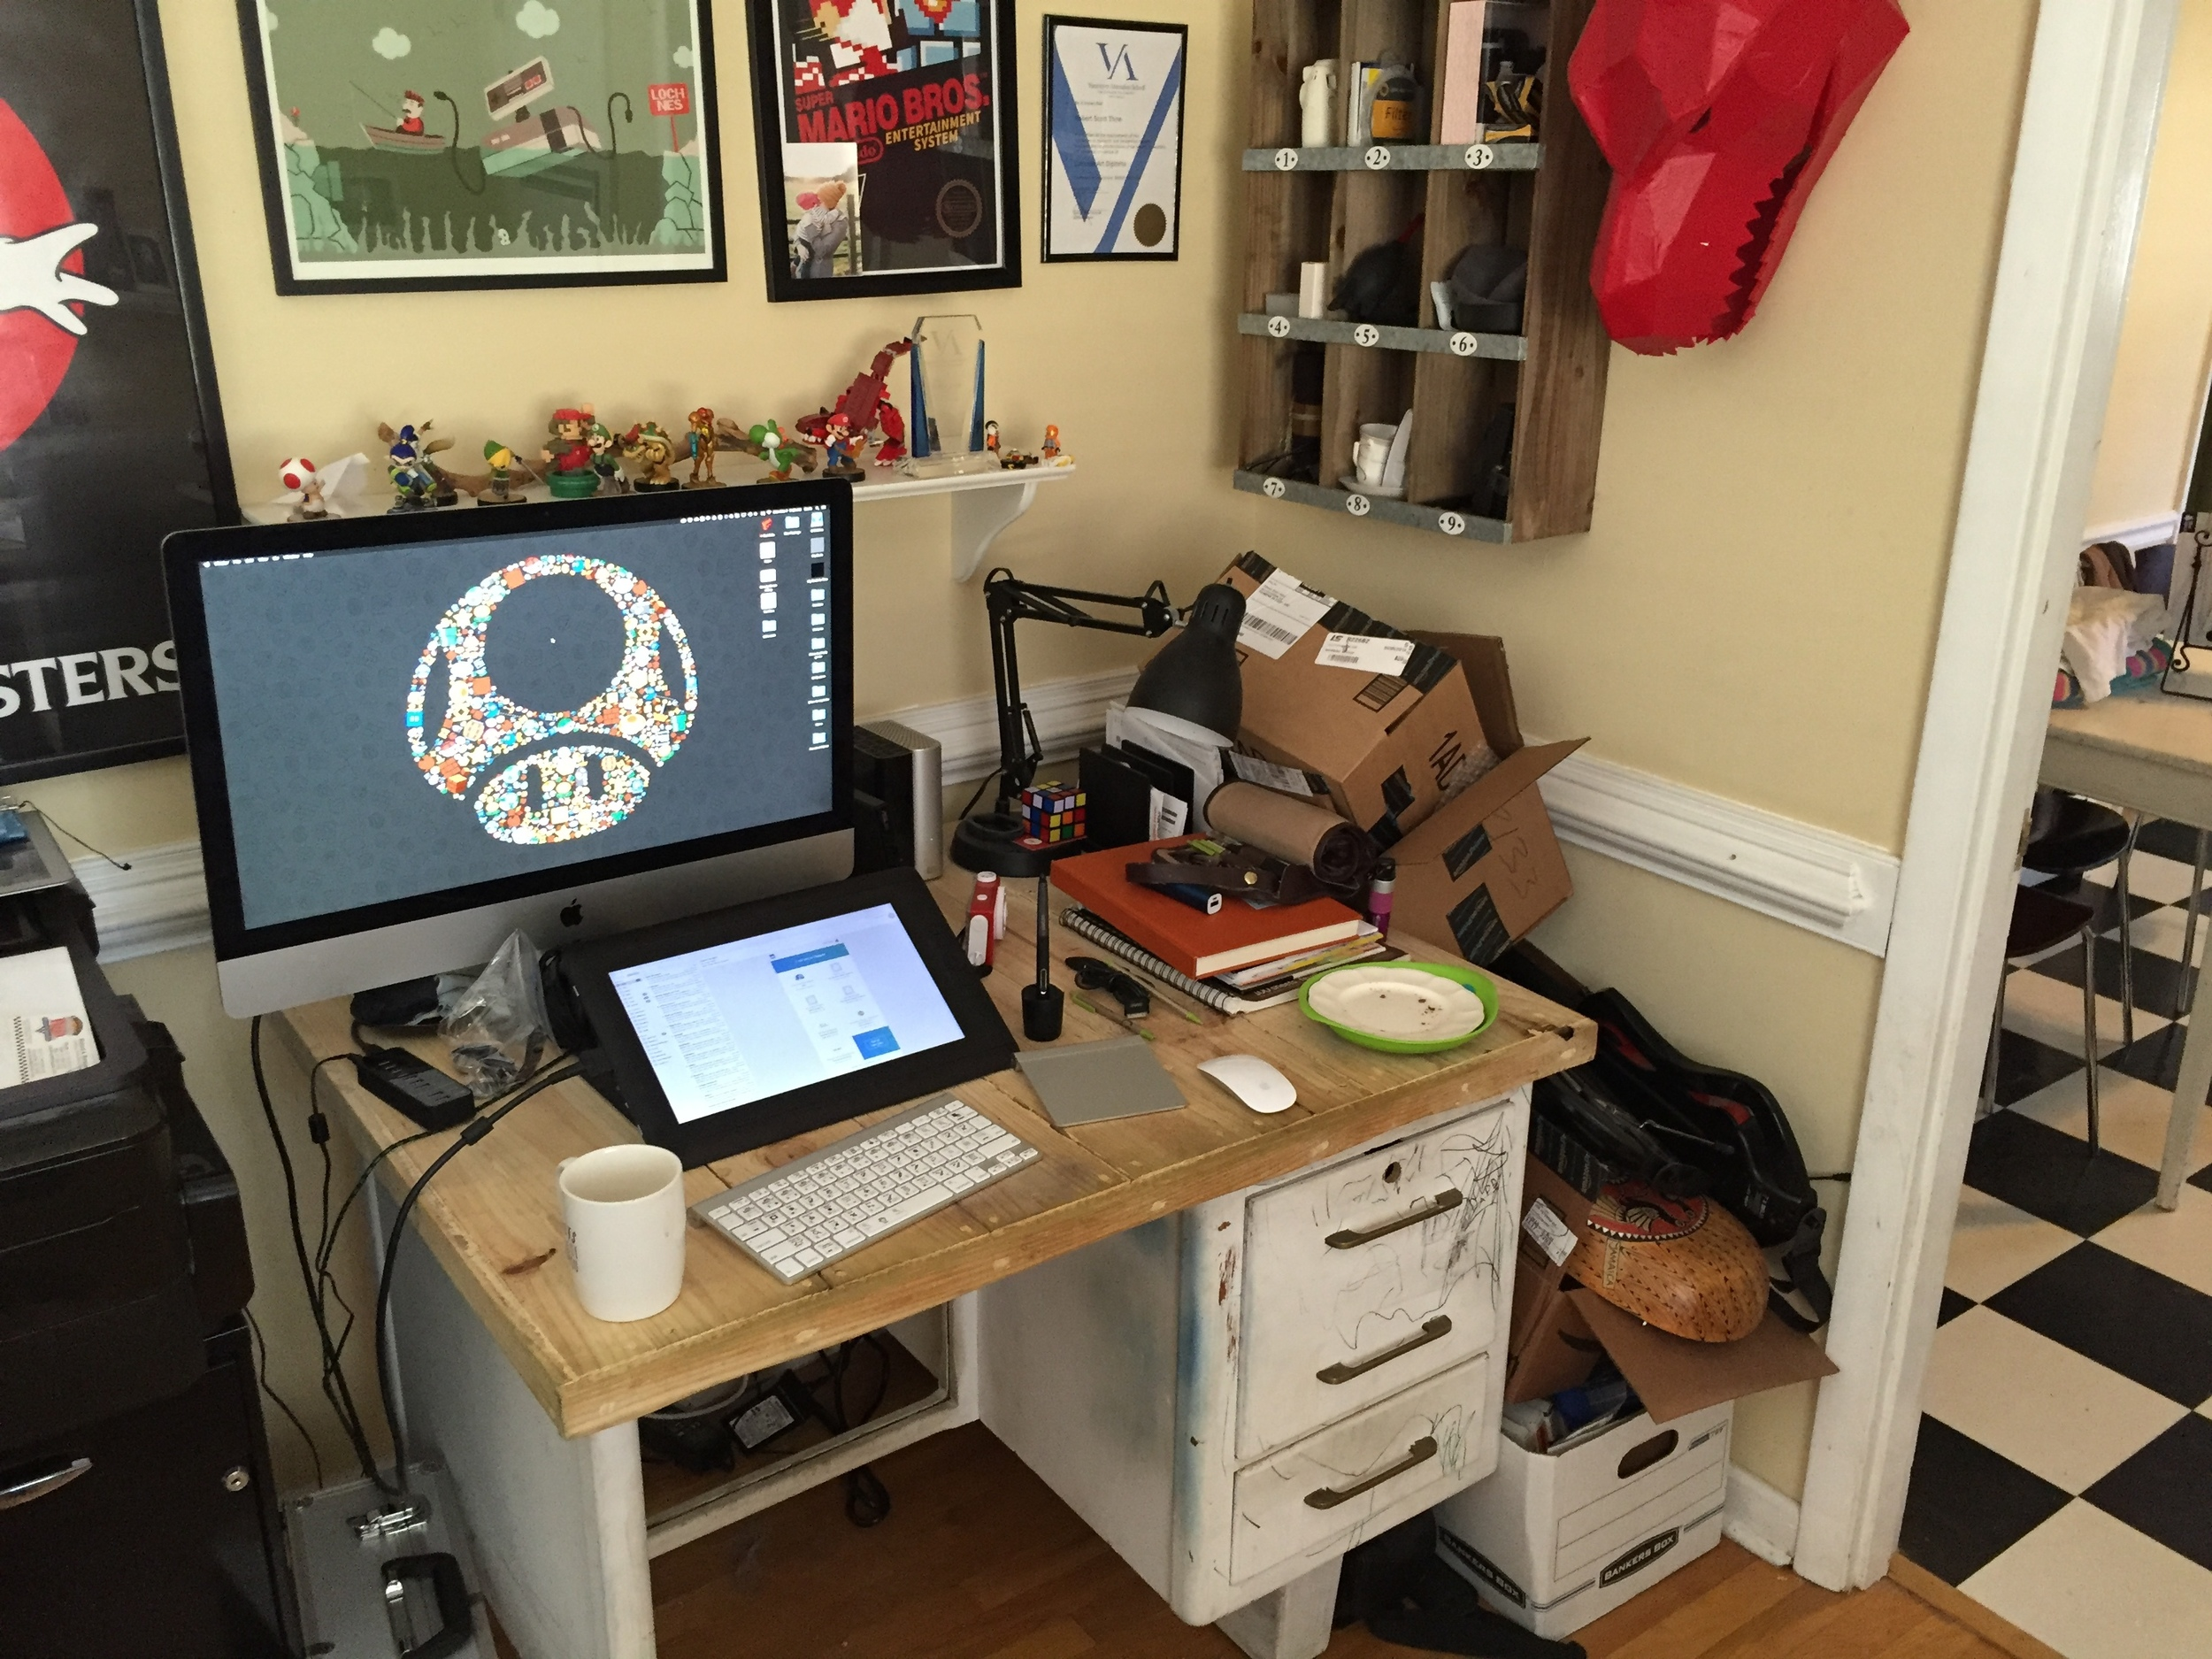 Yes my desk is messy. Yes I am aware of the plates. Yes I know that's gross.